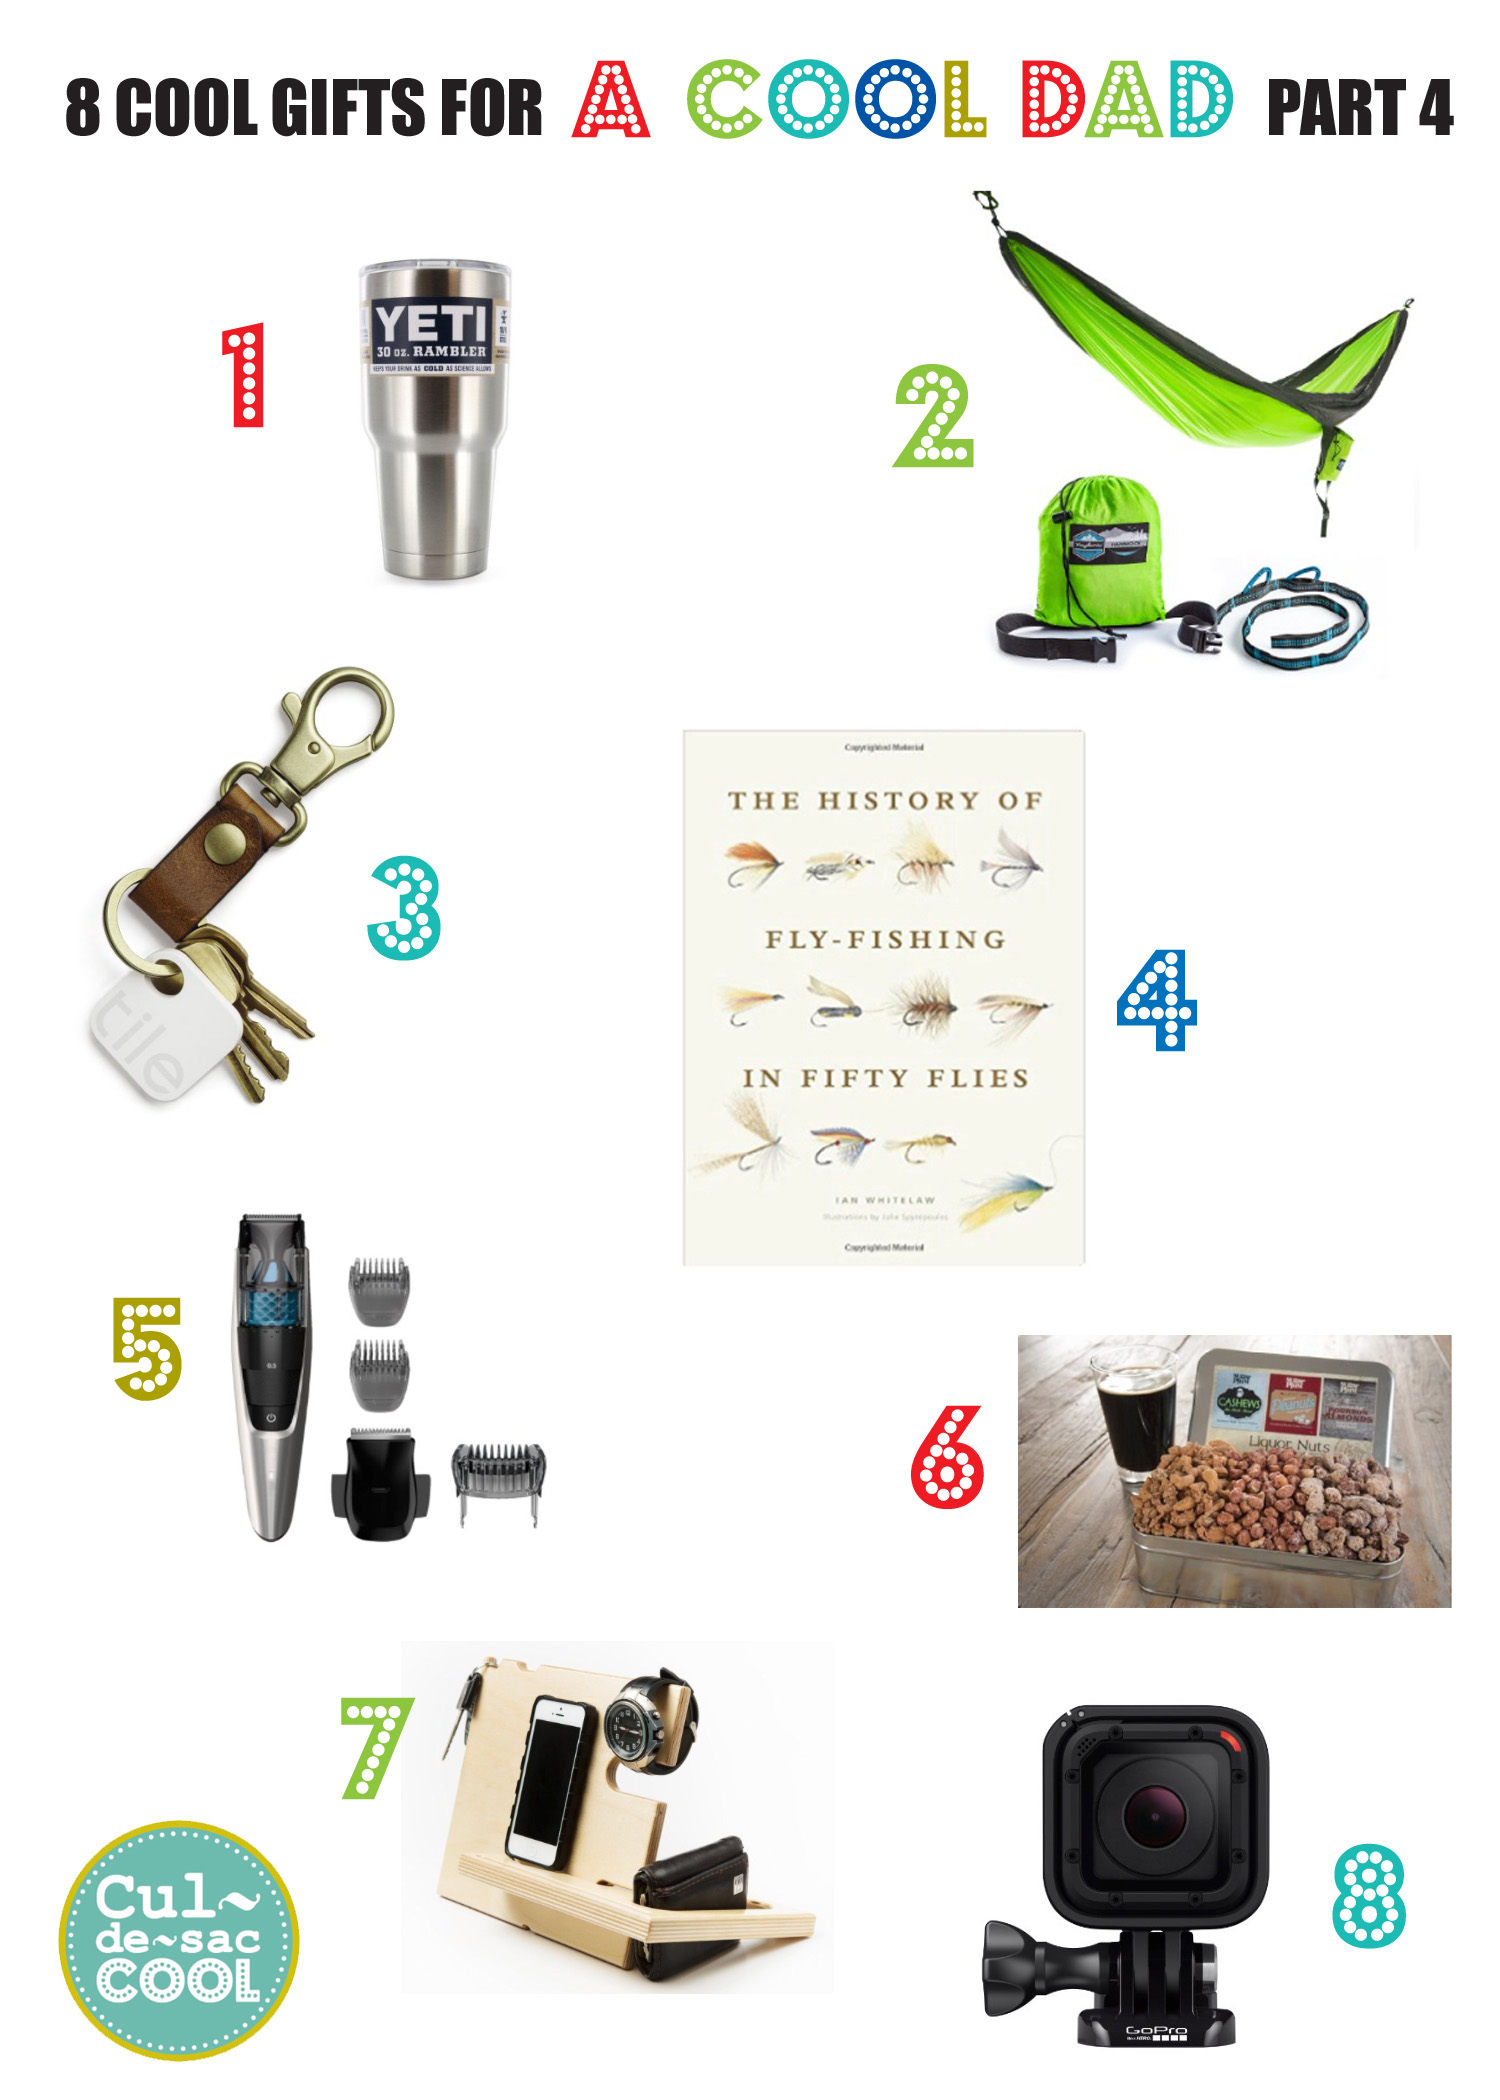 8 COOL GIFTS FOR COOL DAD part 4